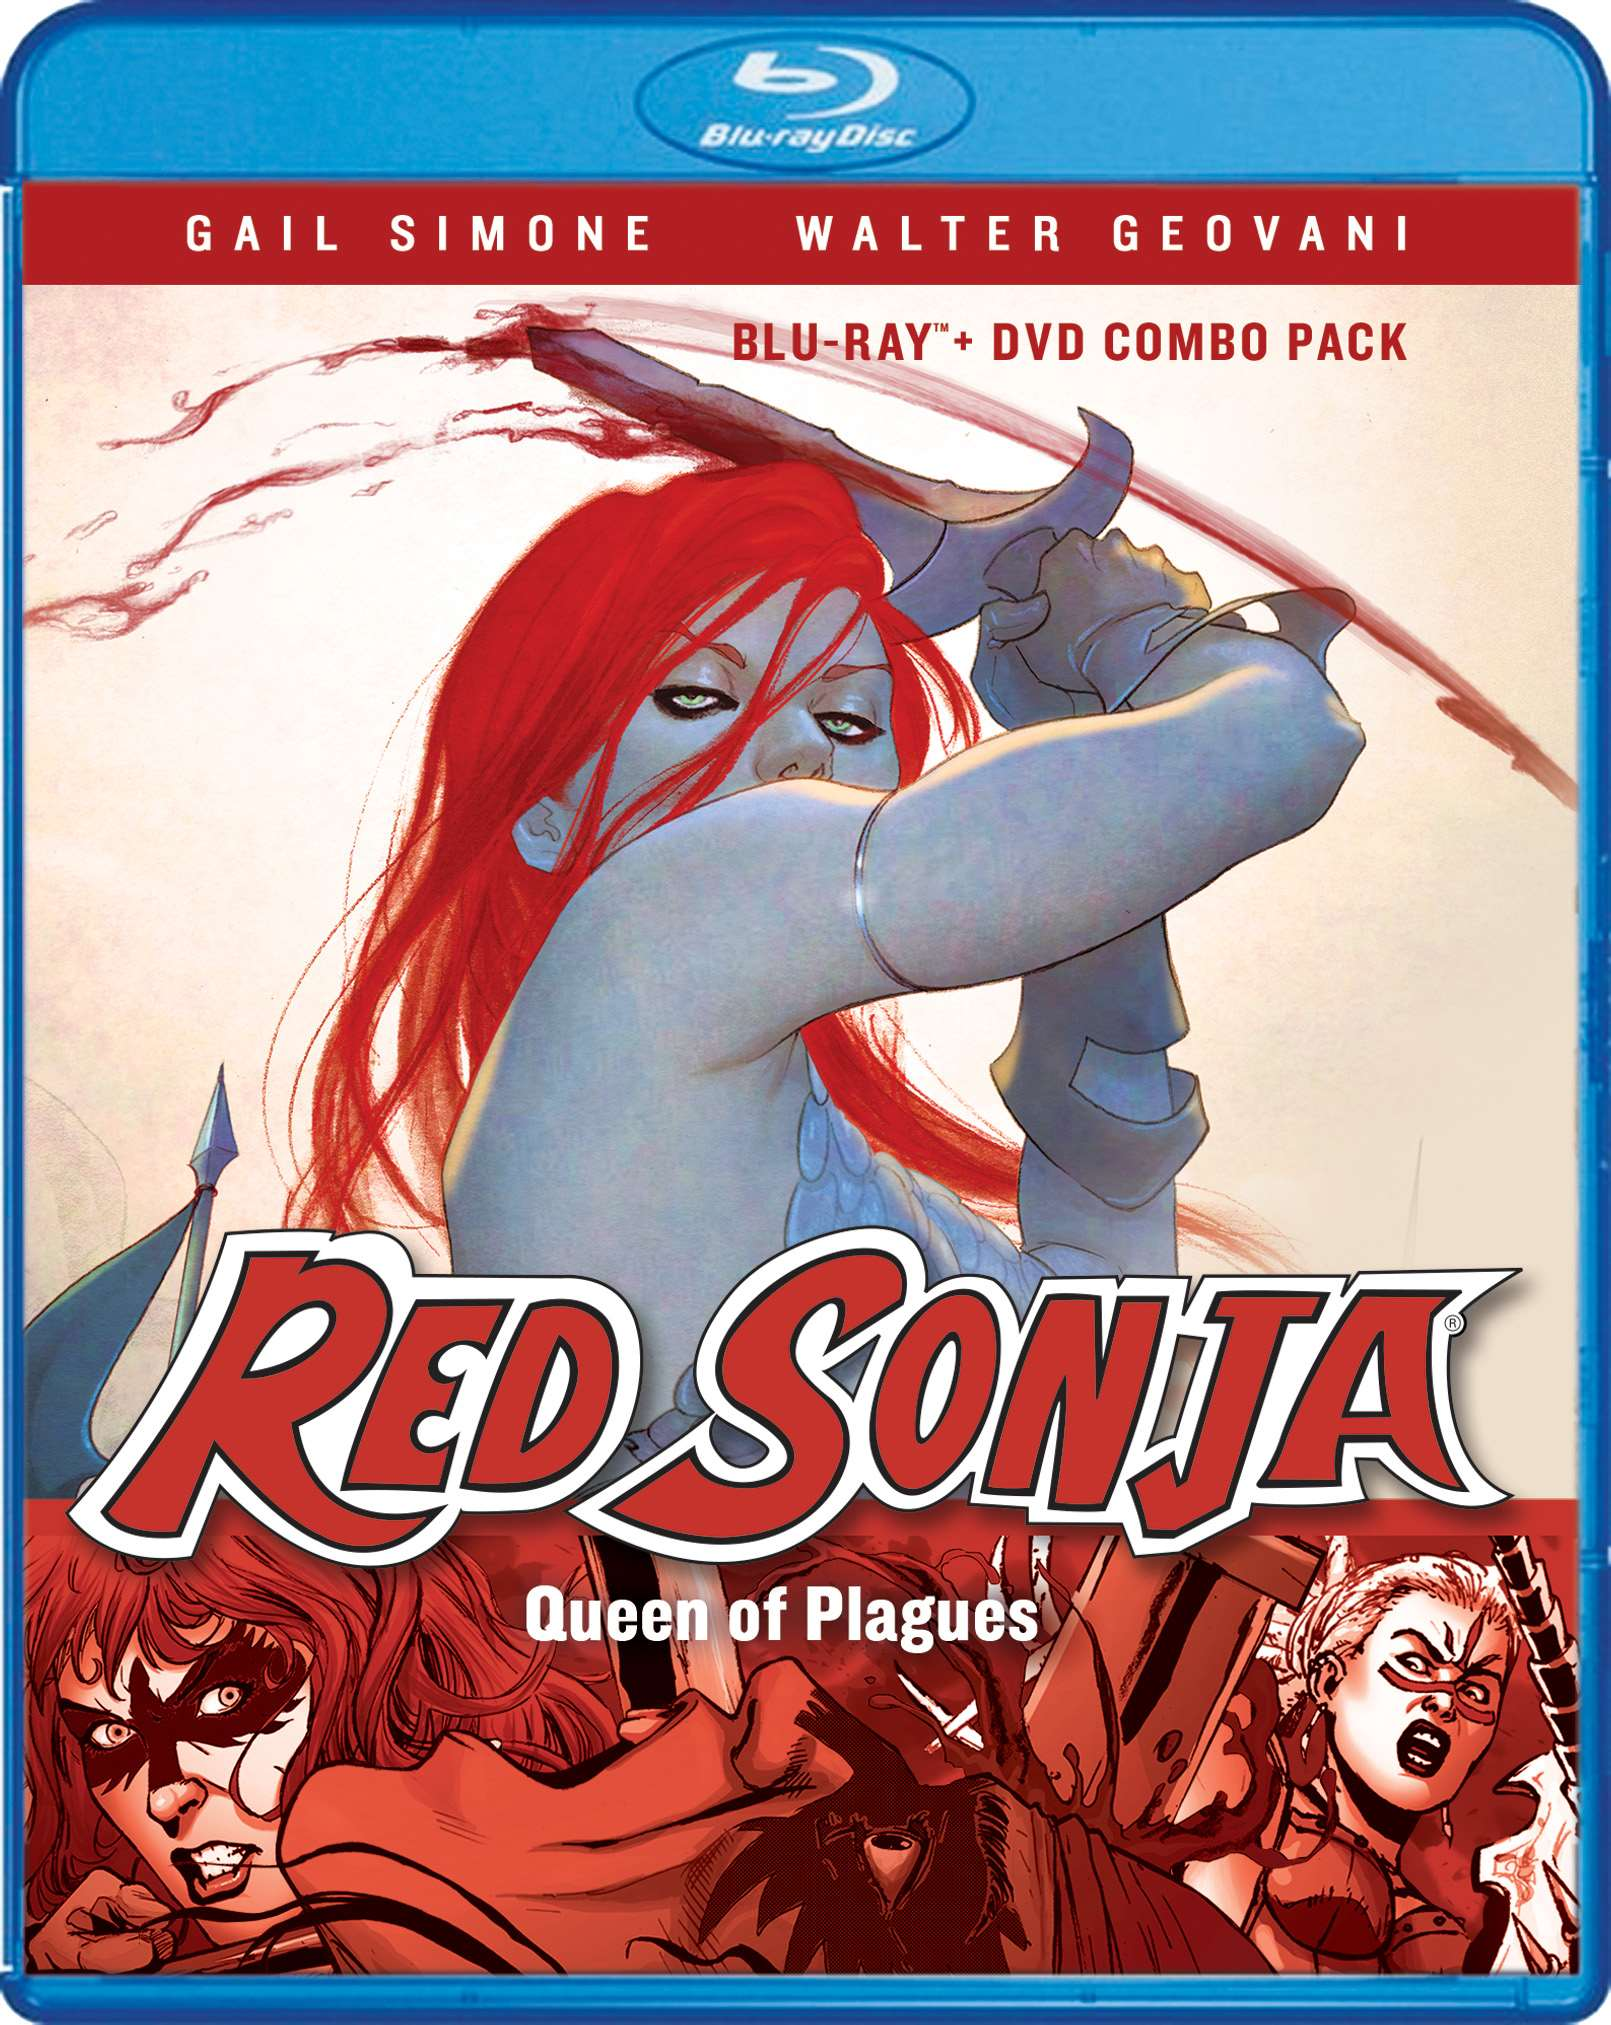 Red_Sonja_Queen_Of_Plagues_Blu-ray_Cover_Art